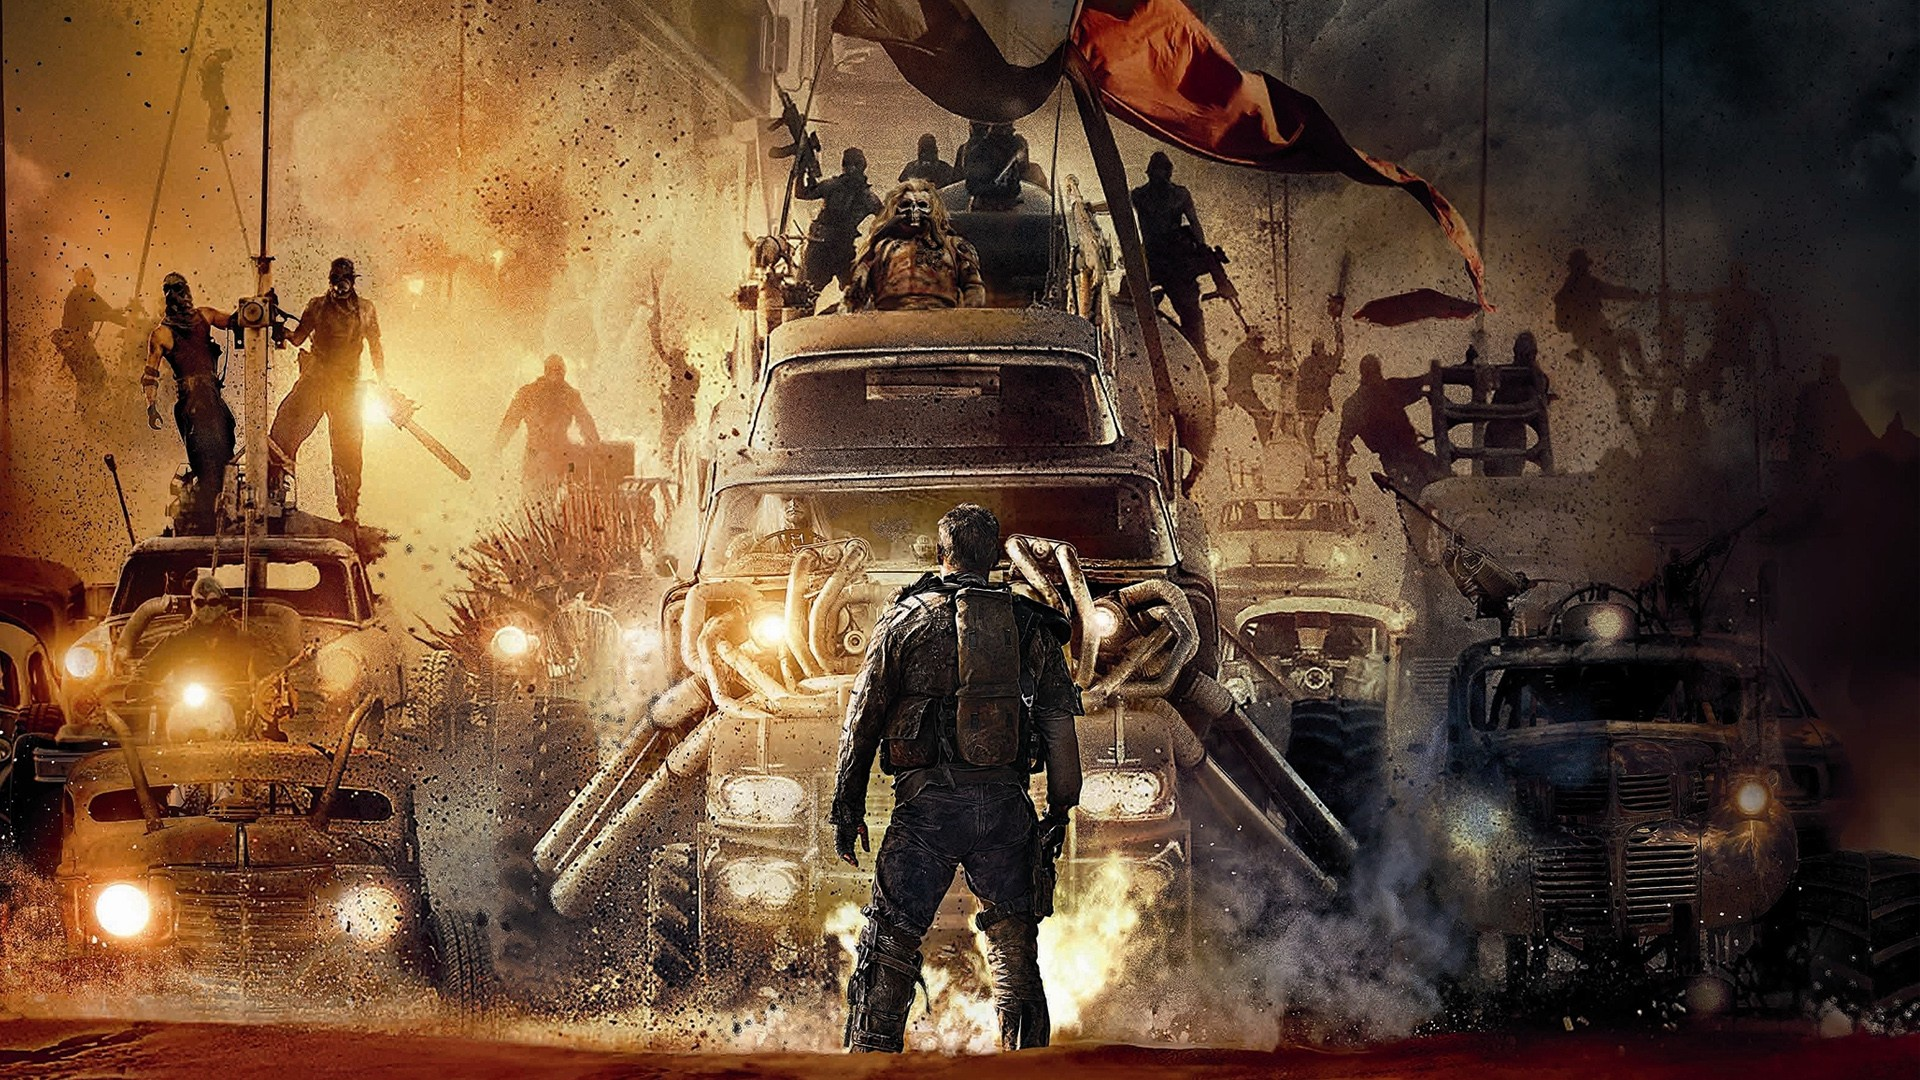 Off Road Cars Hd Wallpapers 2015 Mad Max Fury Road Movie Wallpapers Hd Wallpapers